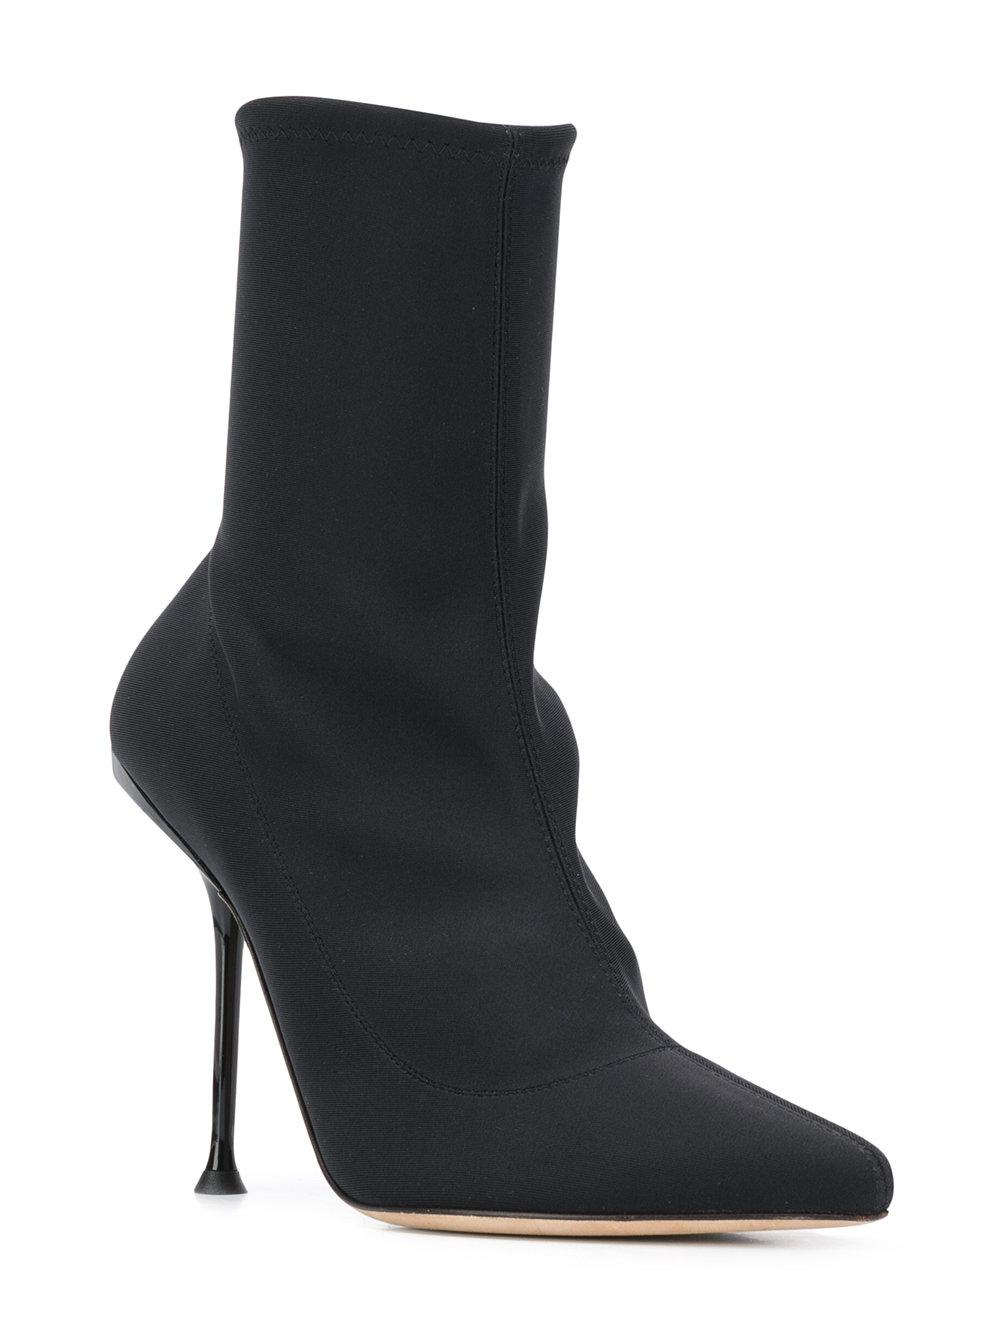 free shipping with mastercard sale cheap online Sergio Rossi Godiva sock boots buy sale online cheap price buy discount discount clearance EqKXMhVJxK